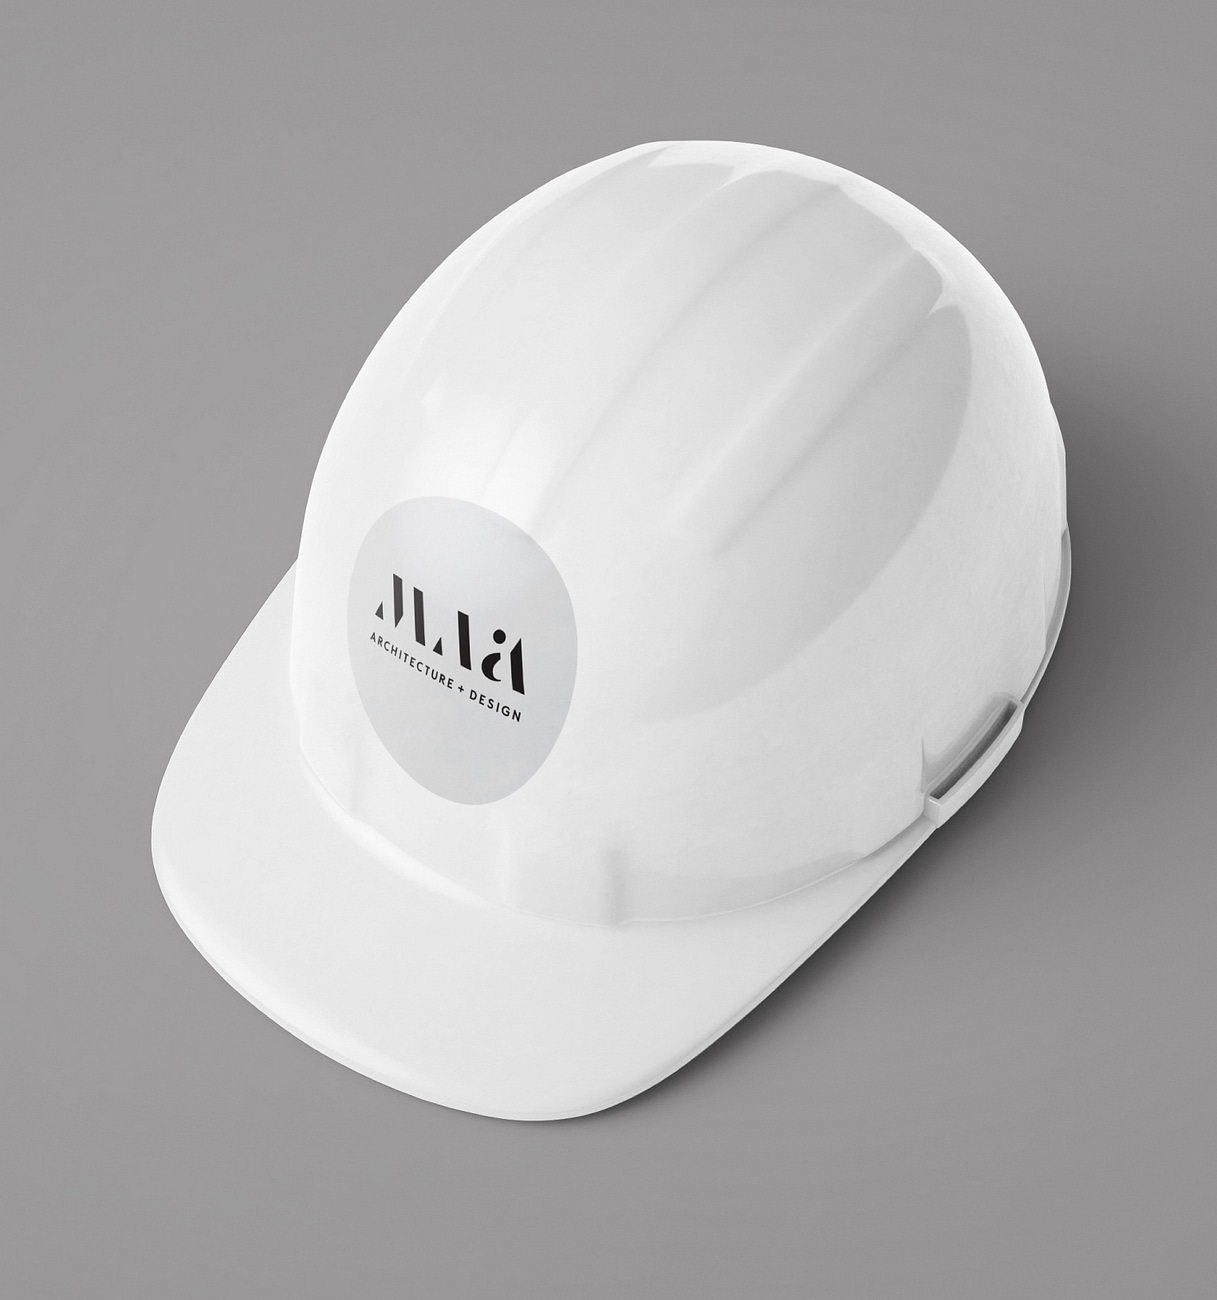 Architect hard hat with branding collateral (sticker)